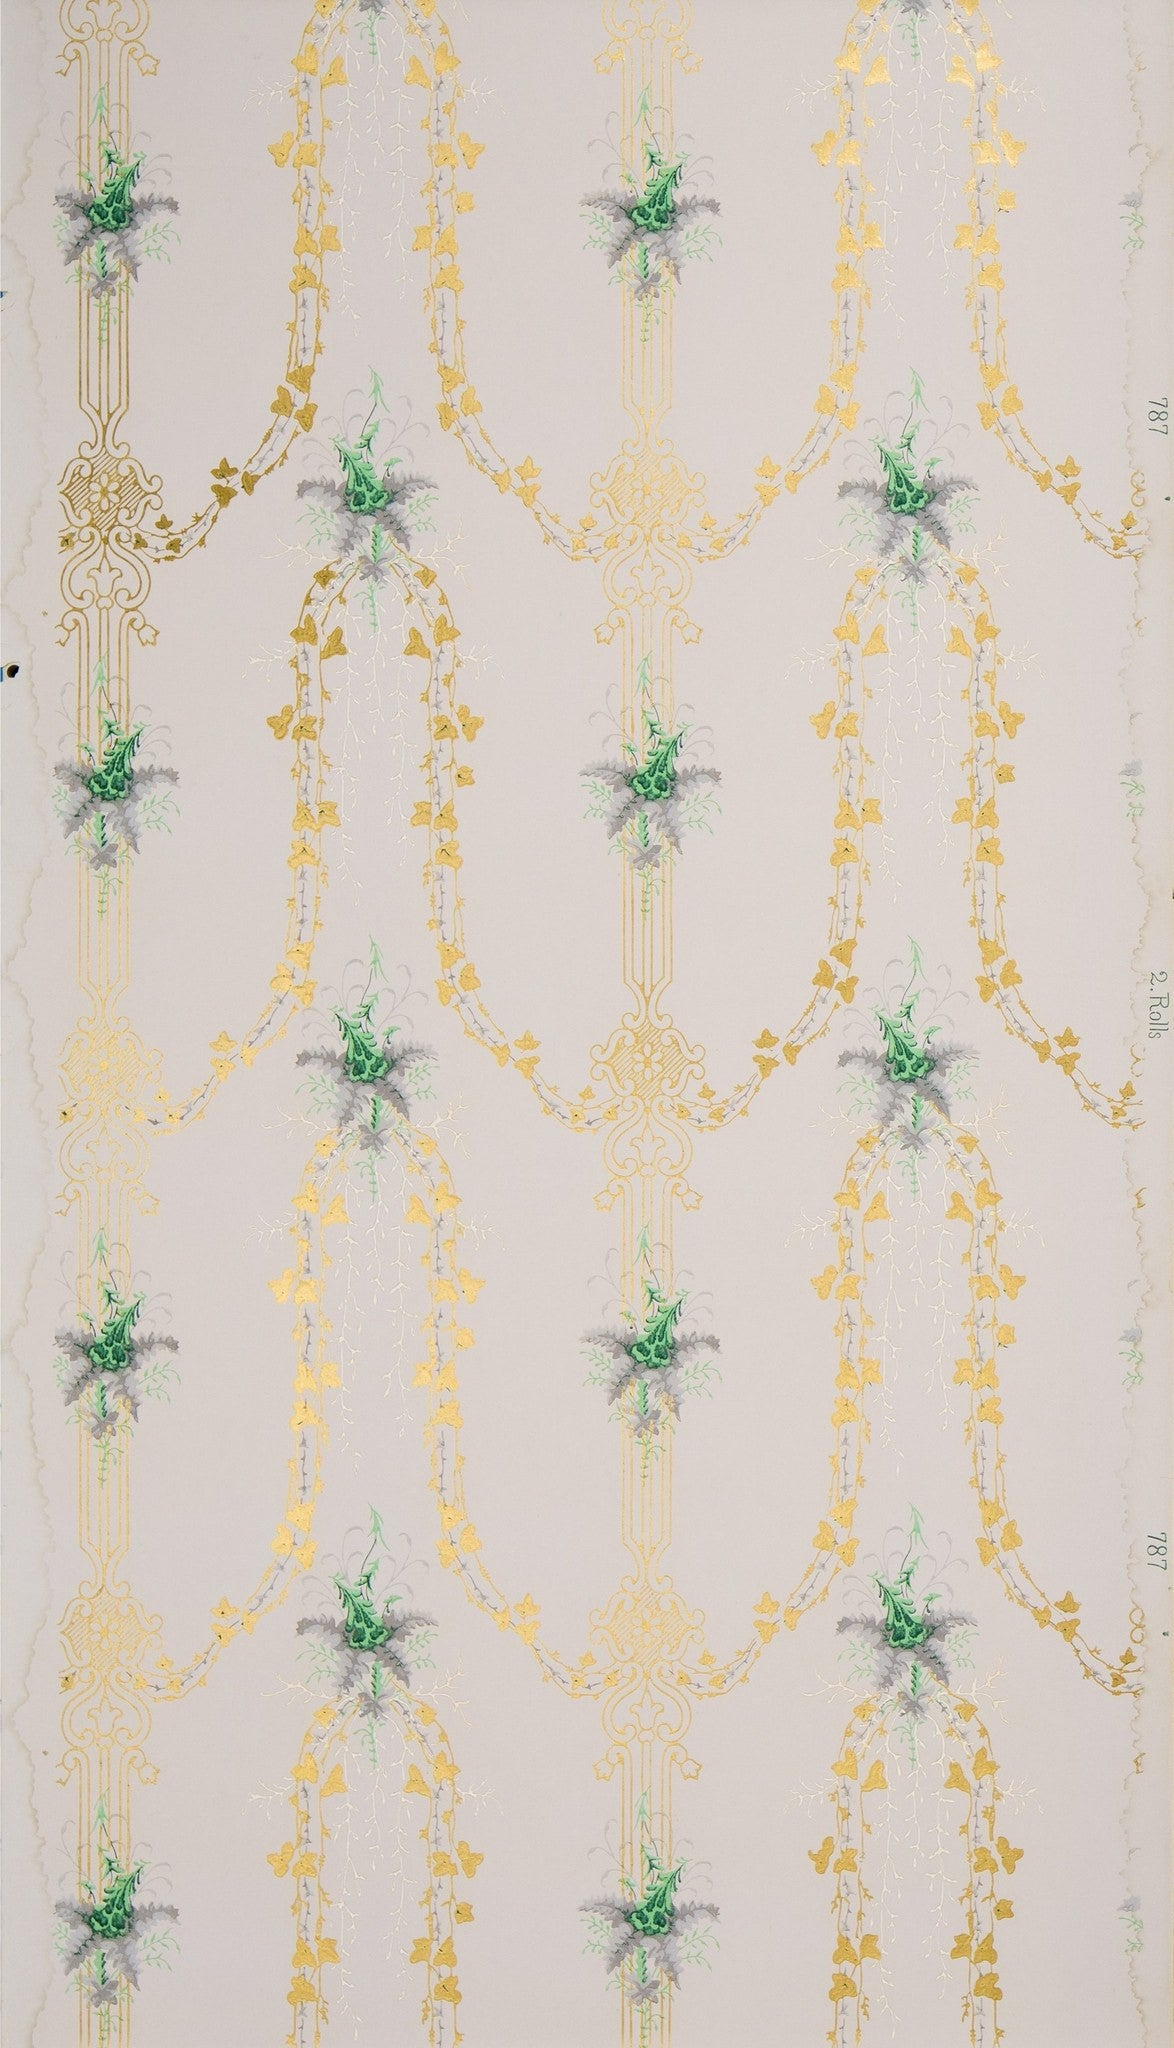 Delicate Foliate Sprays and Gilt Vines - Antique Wallpaper Remnant